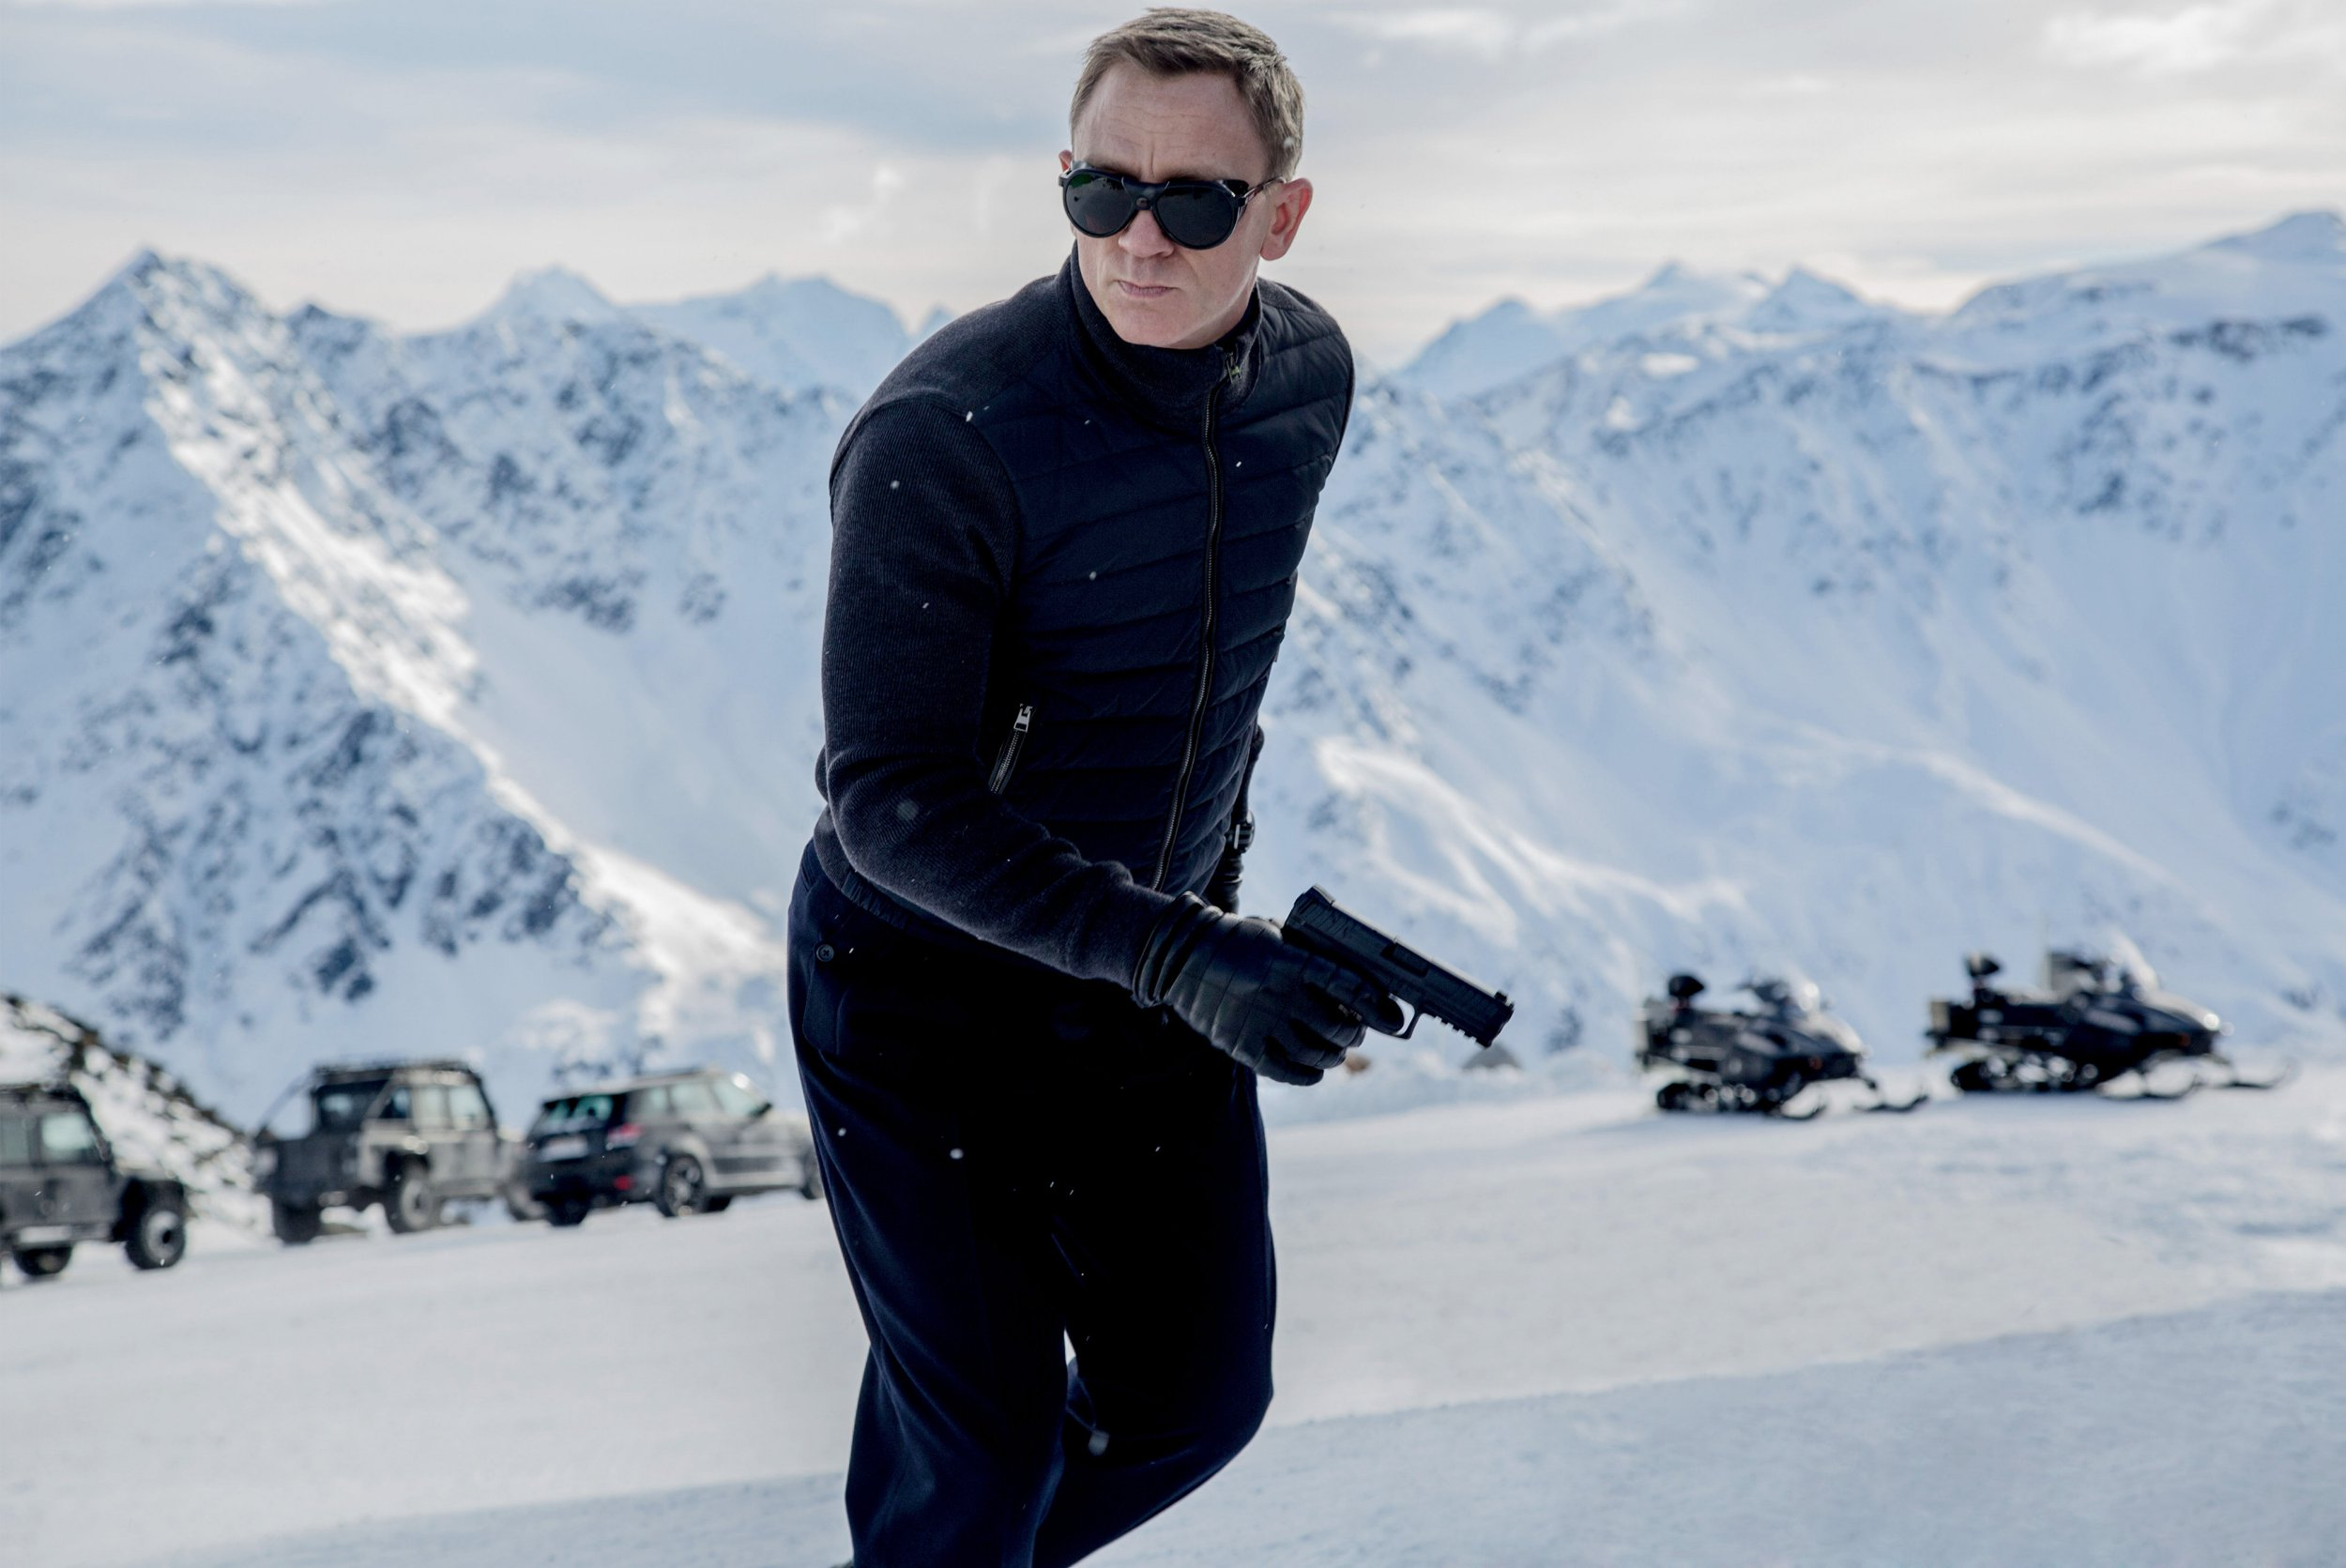 James Bond 25 new 'title' leaks as Eclipse and thank God it's not Shatterhand